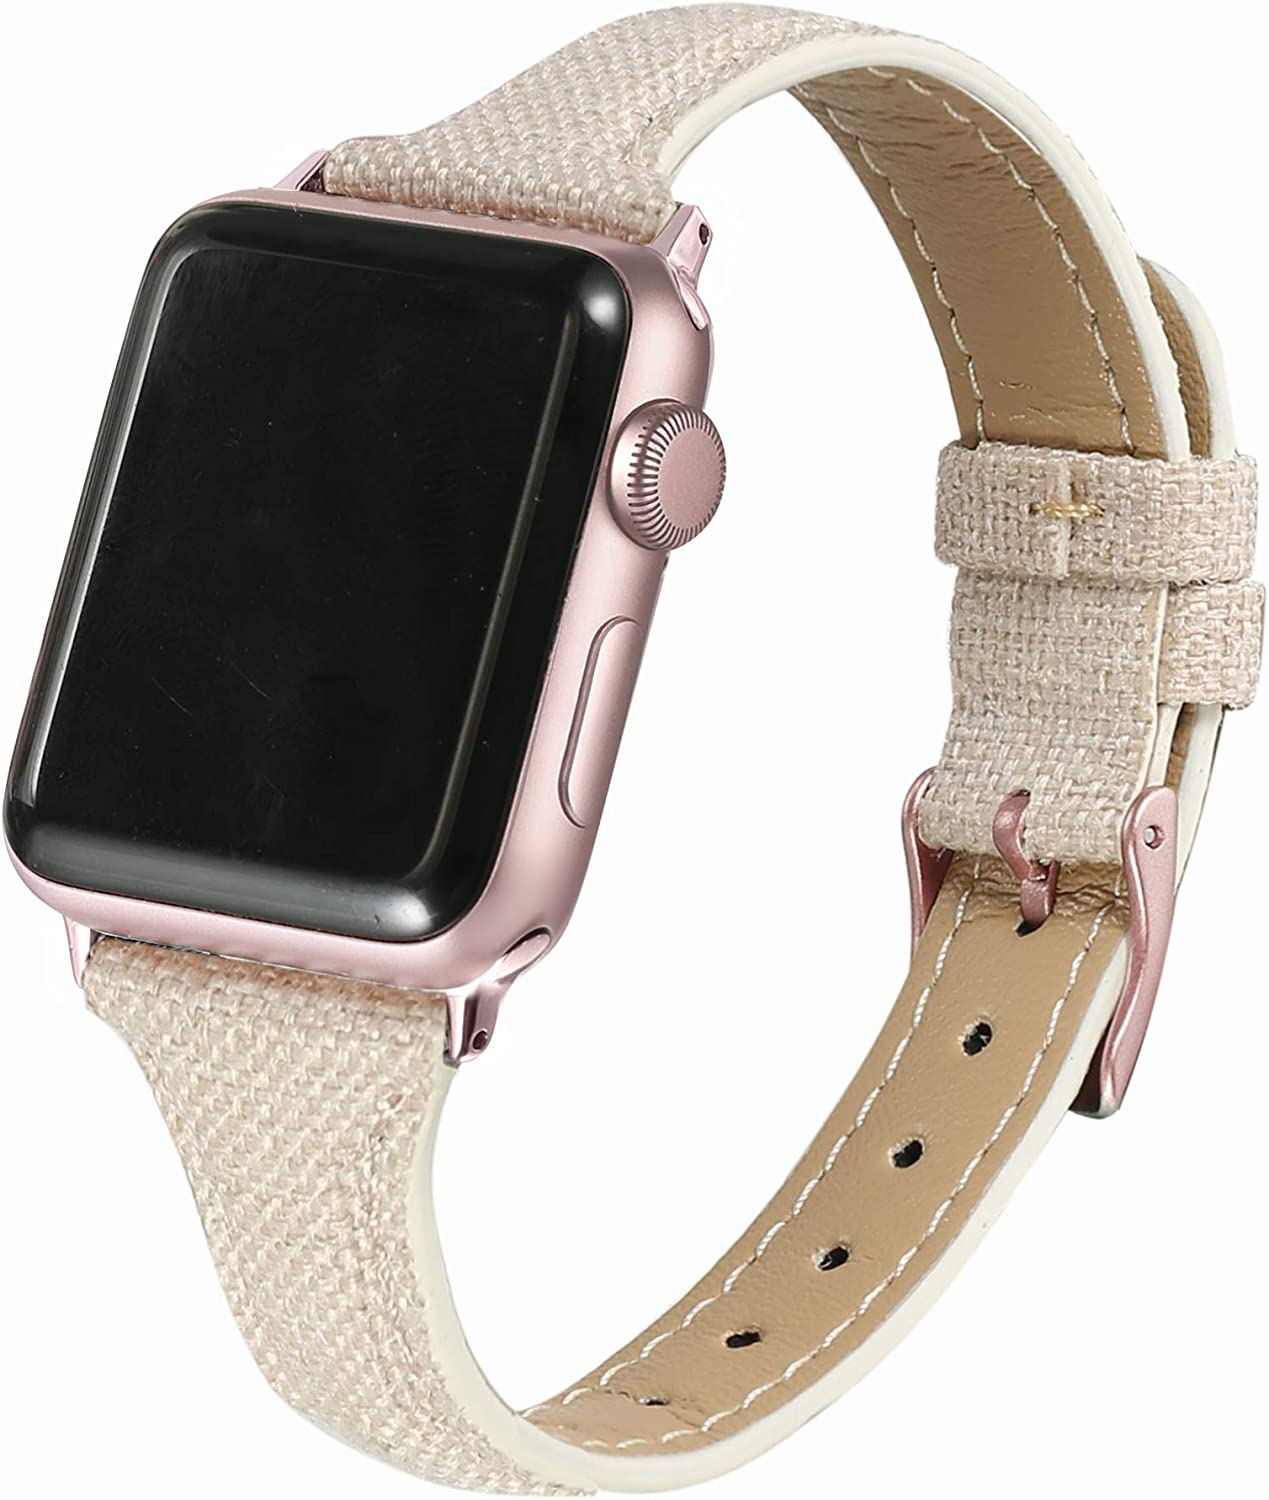 Secbolt Slim Woven Bands Compatible with Apple Watch Band 38mm 40mm, Classy Canvas Strap with Soft Leather Lining for iWatch SE Series 6/5/4/3/2/1, Beige